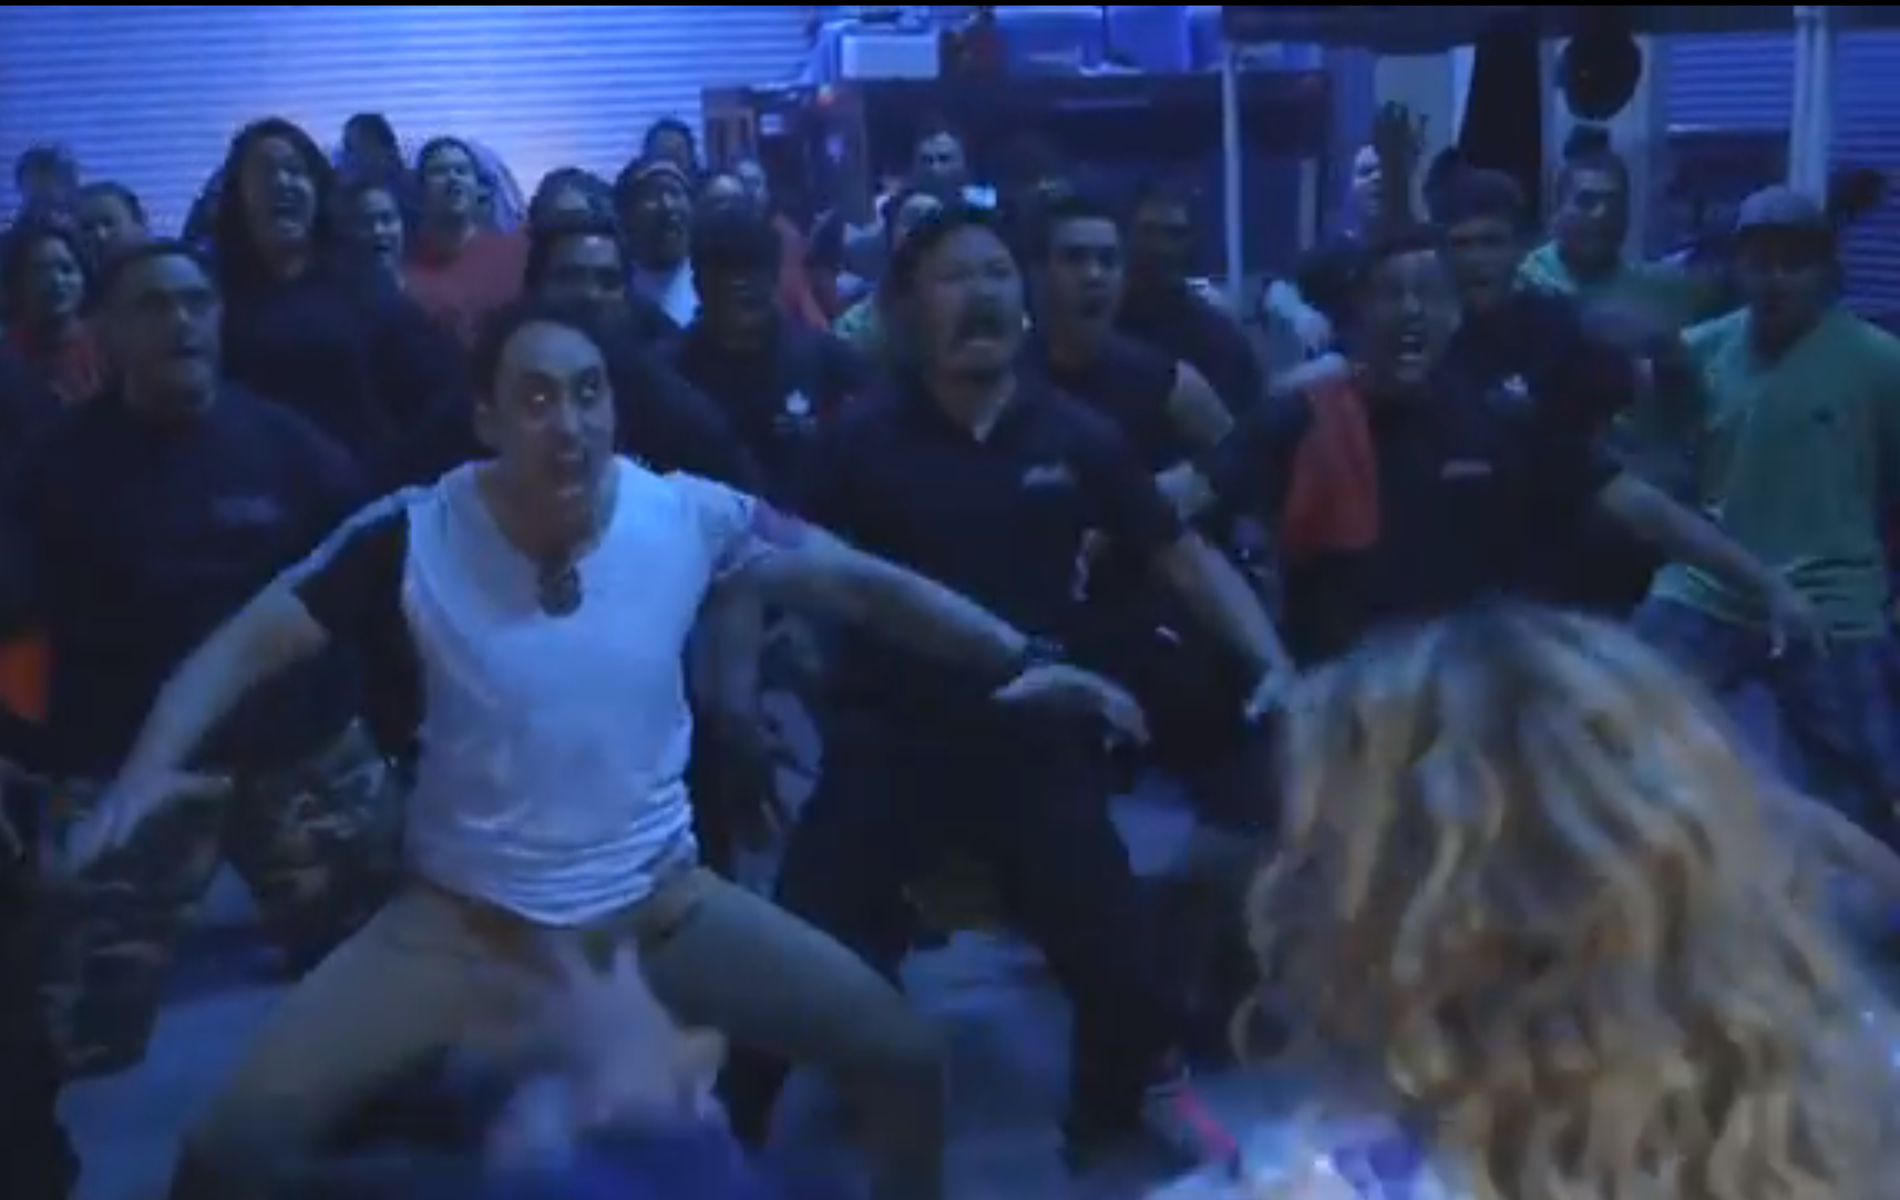 New Zealand's All Blacks rugby team surprise Beyoncé with Haka dance.